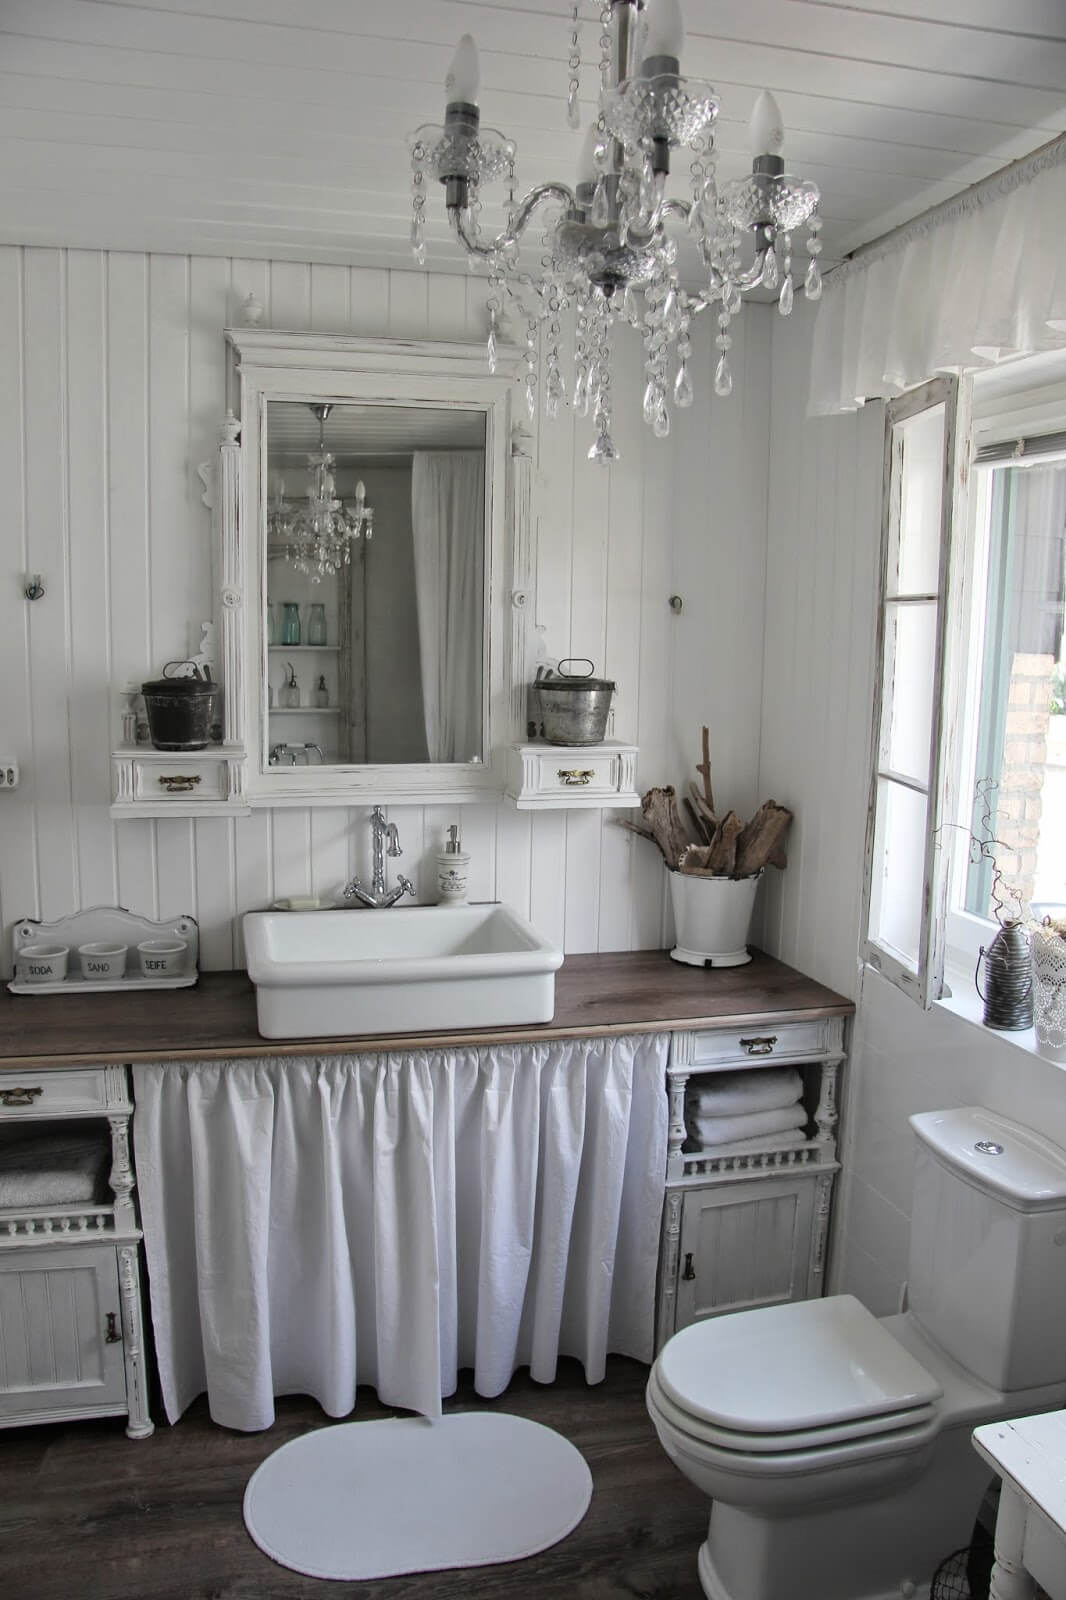 15 Lovely Shabby Chic Bathroom Decor Ideas Style Motivation